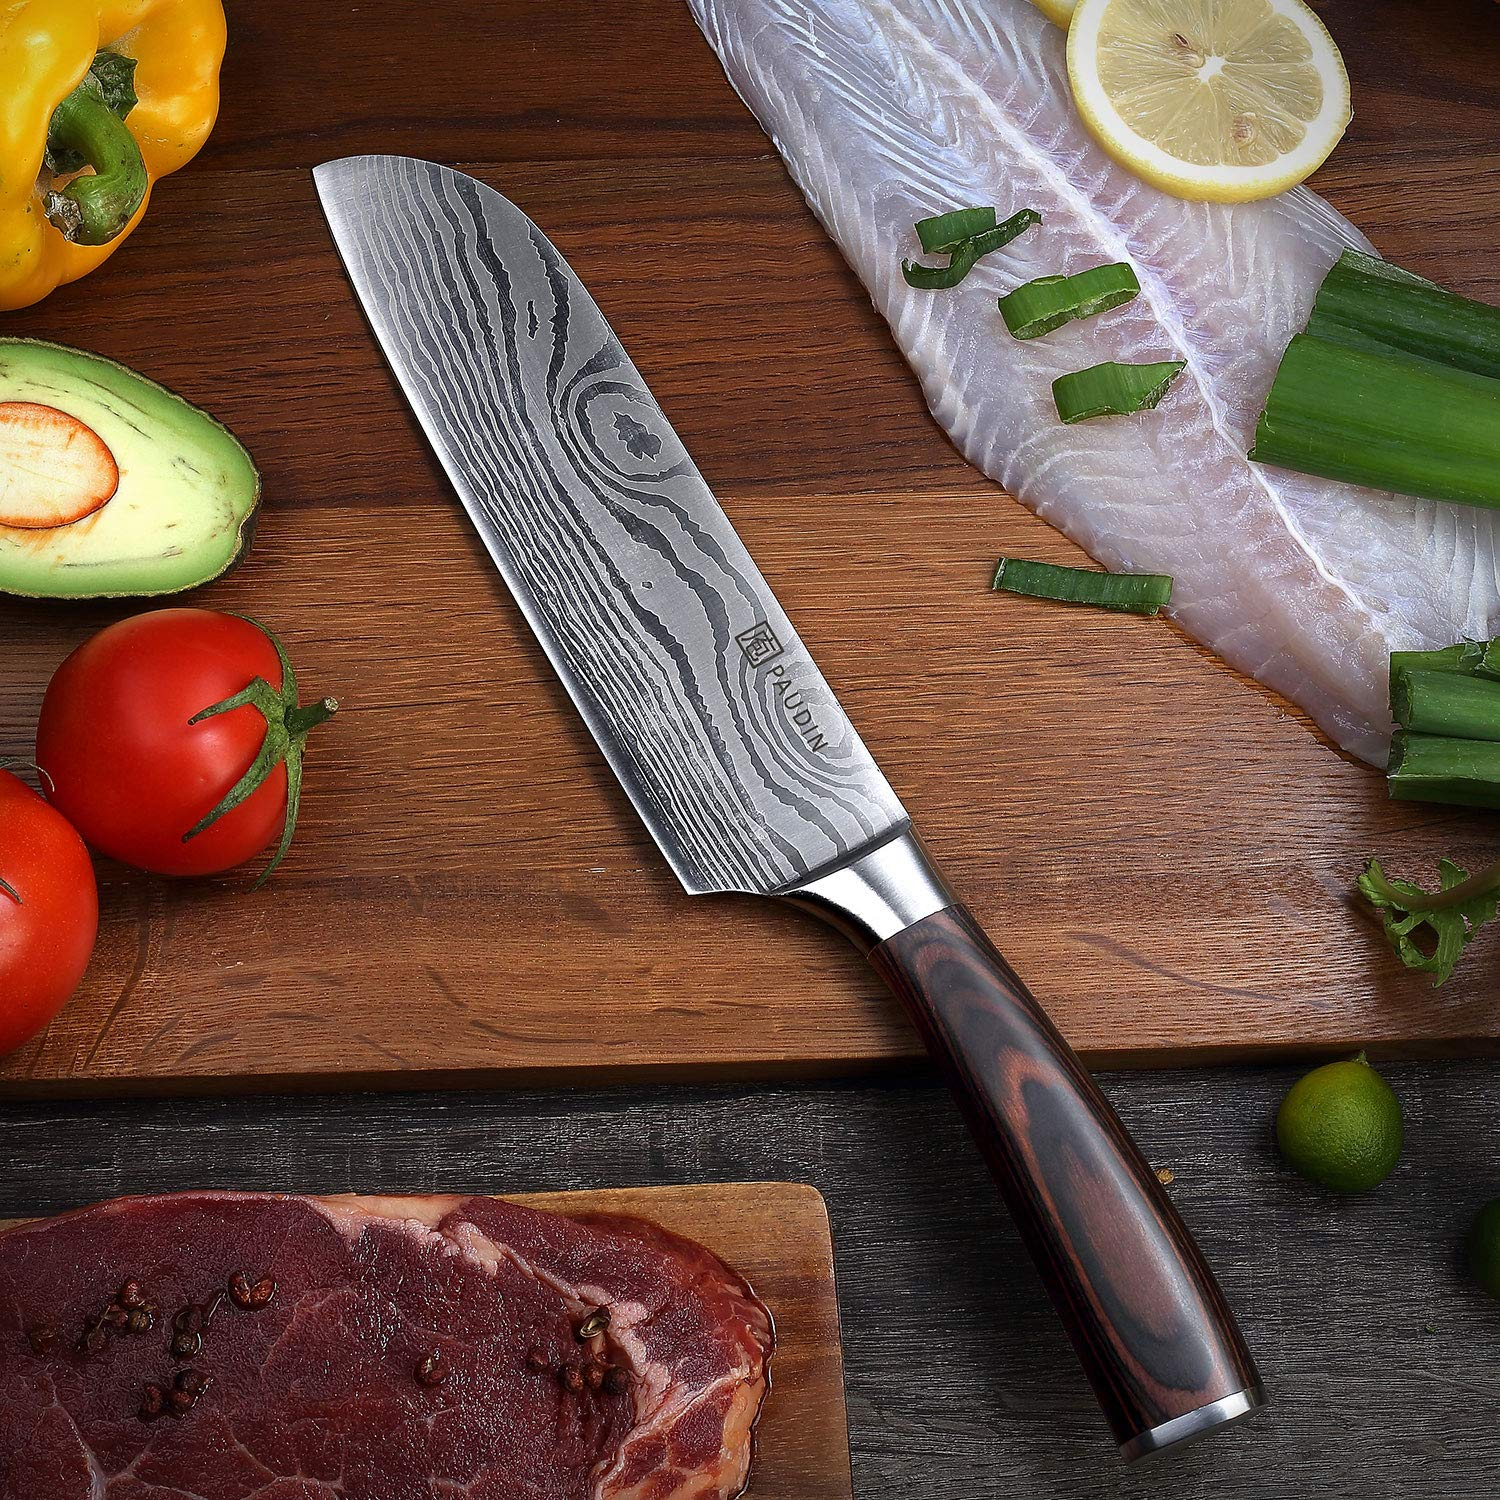 PAUDIN Classic 7 inch Hollow Ground Santoku Knife, German High Carbon Stainless Steel Kitchen Knife by PAUDIN (Image #2)